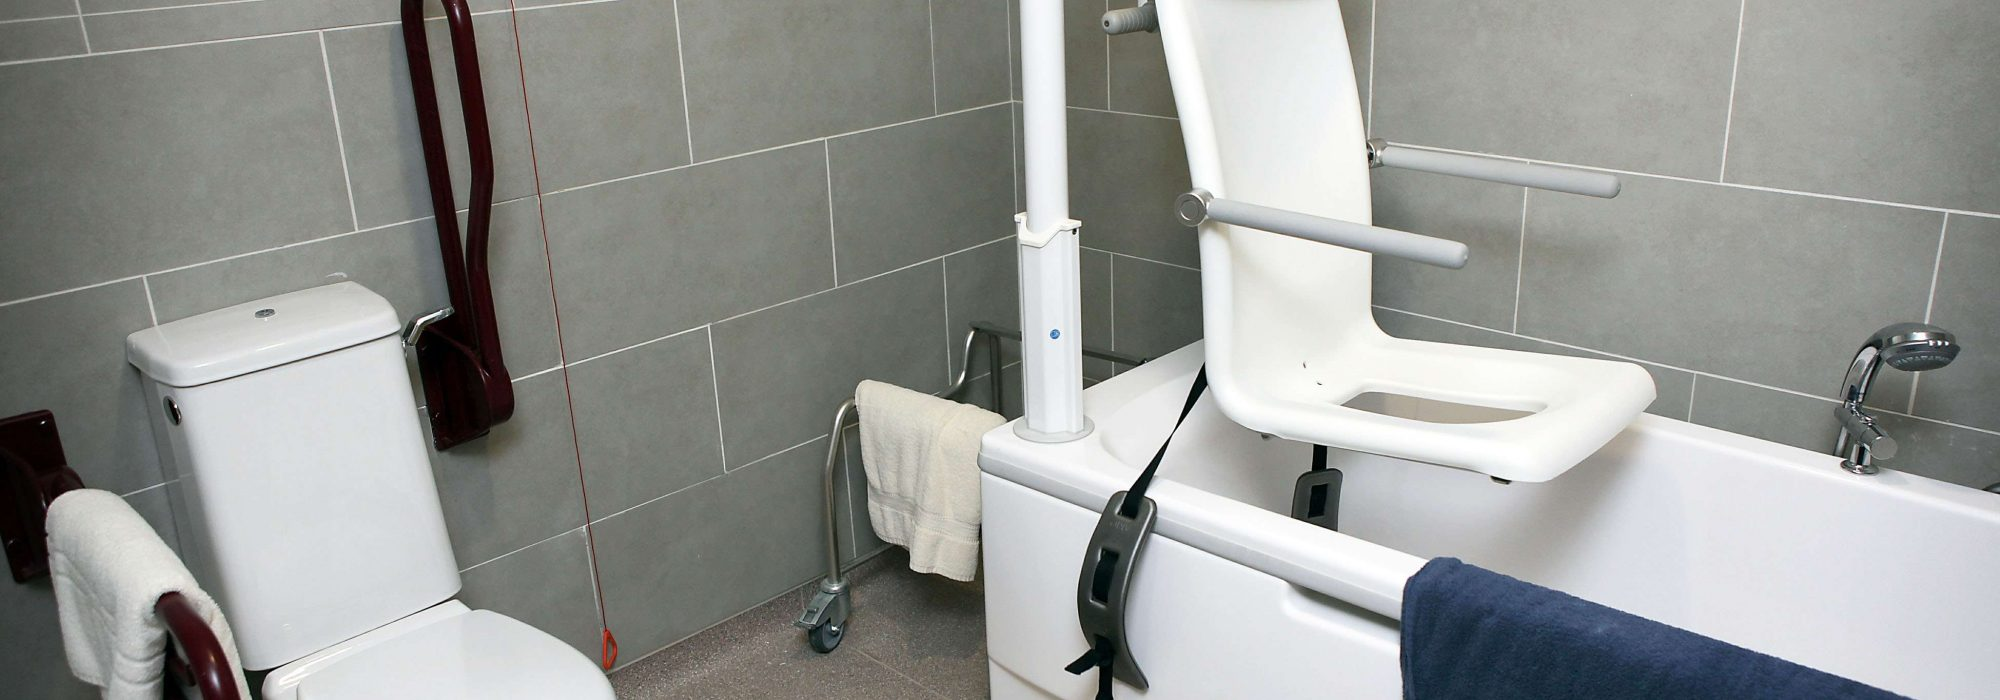 A bathroom that has been adapted to allow accessibility to the bath and toilet